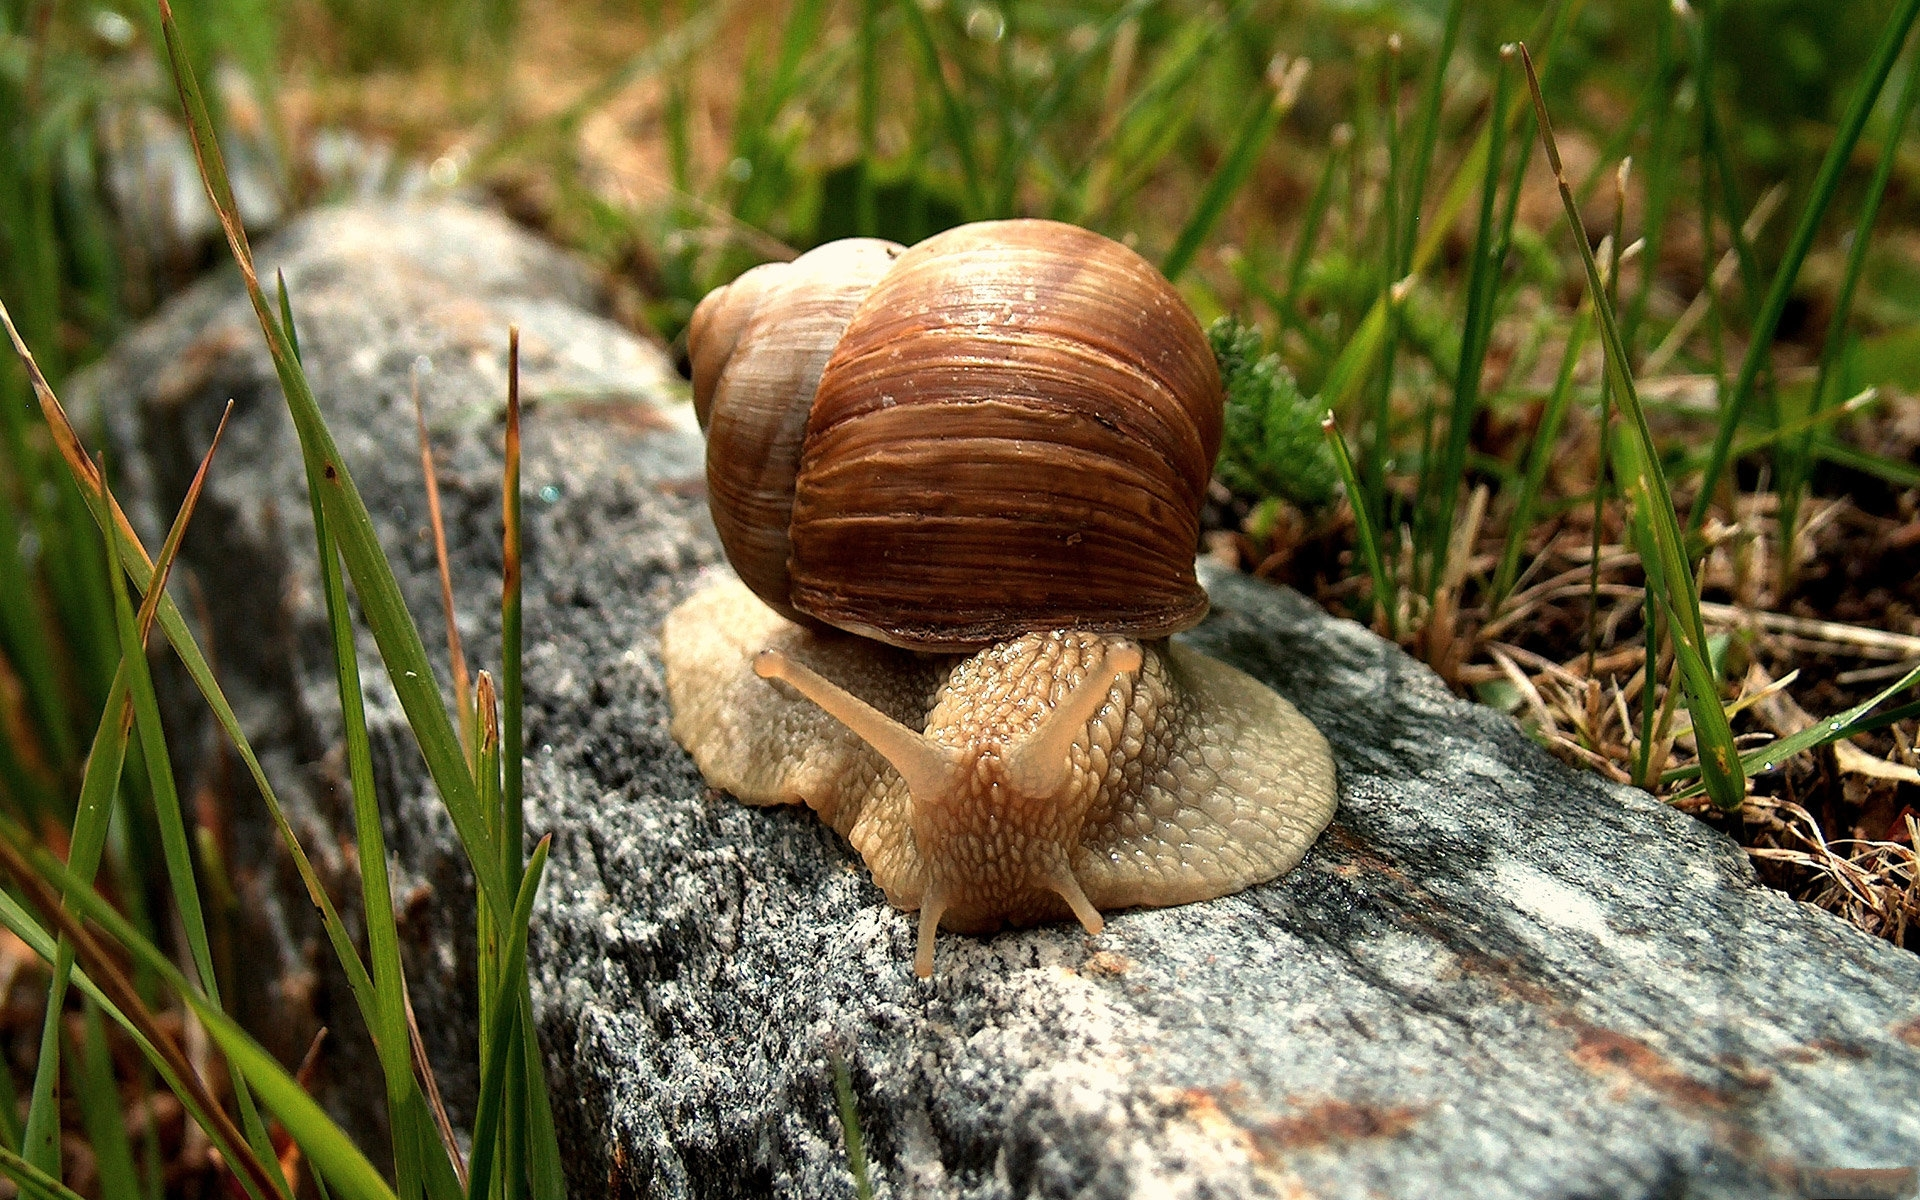 images of a snail